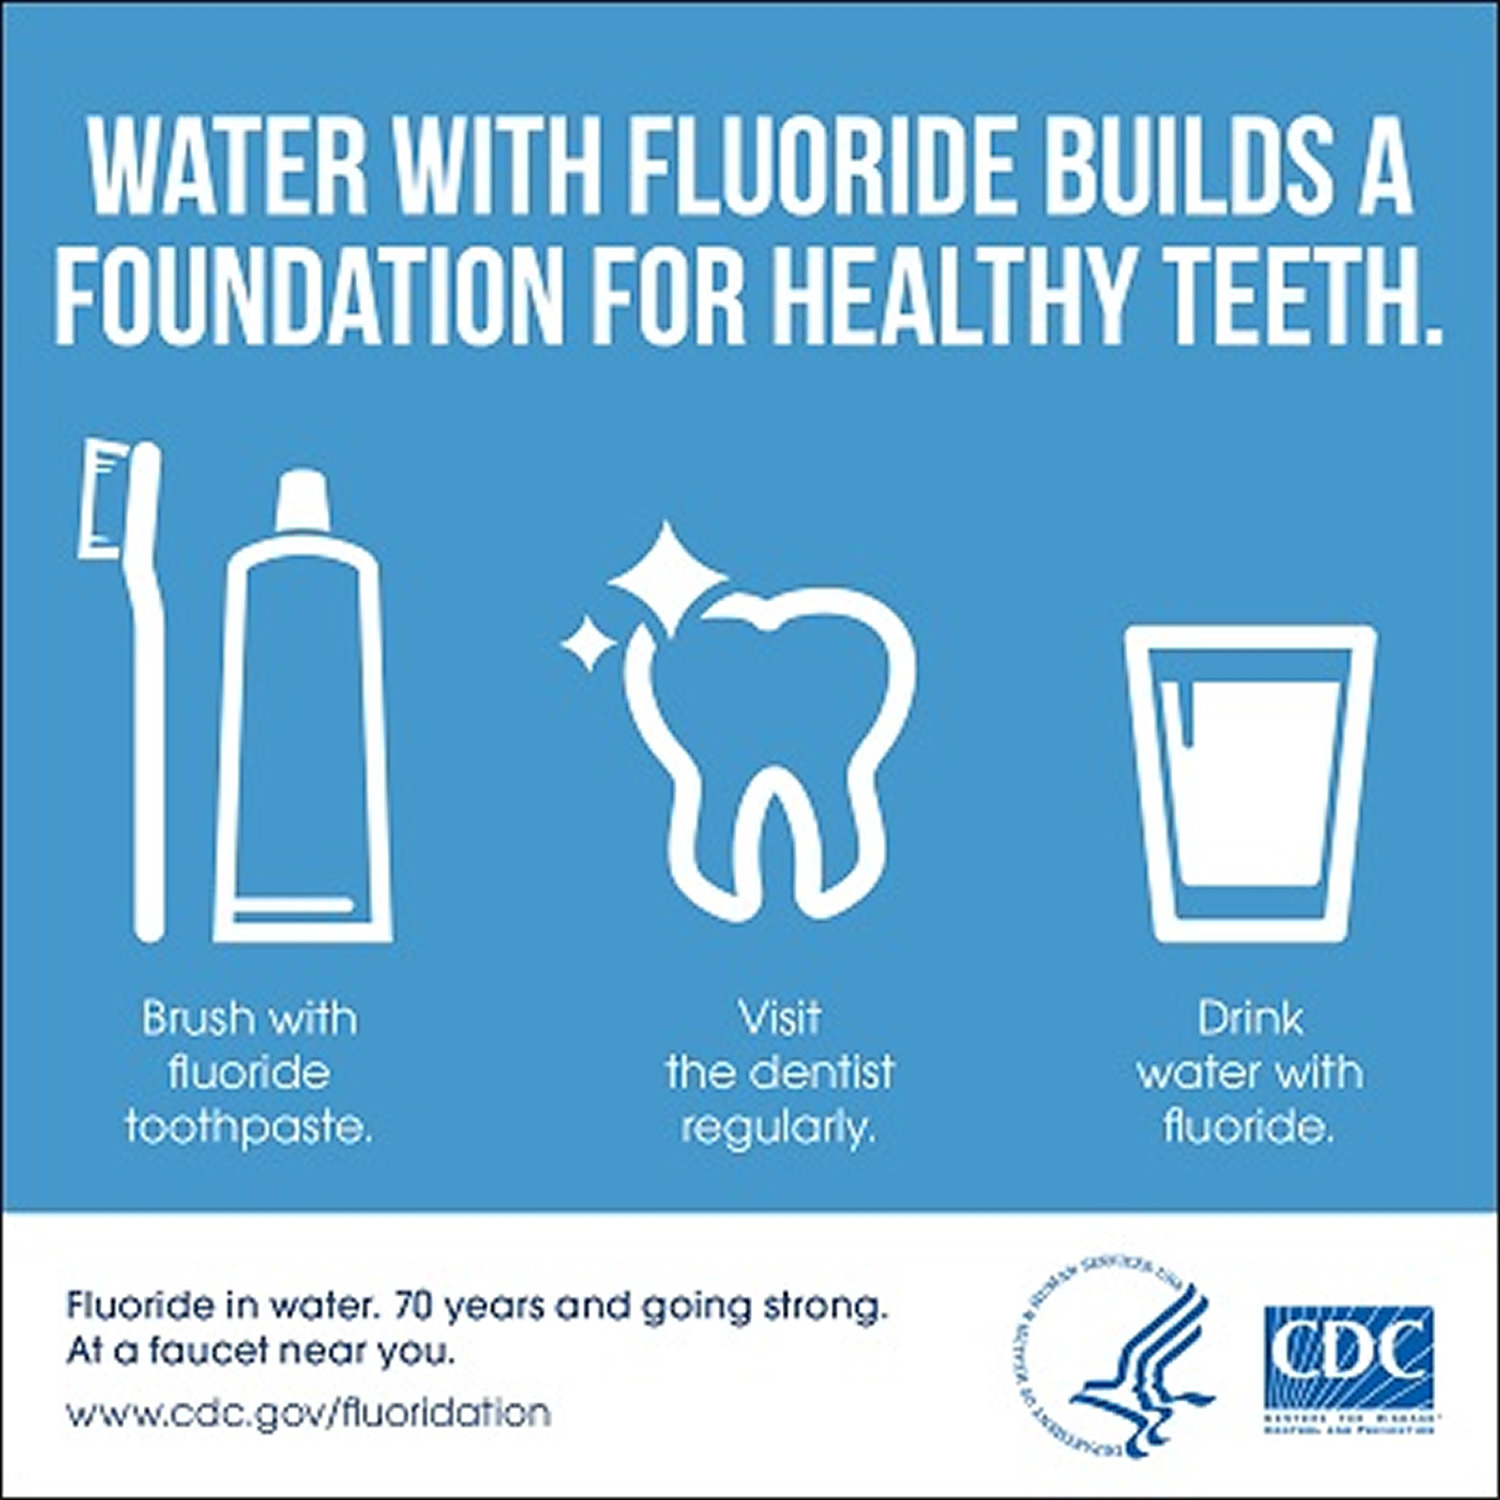 Why Is Fluoride Added To Drinking Water And Toothpaste